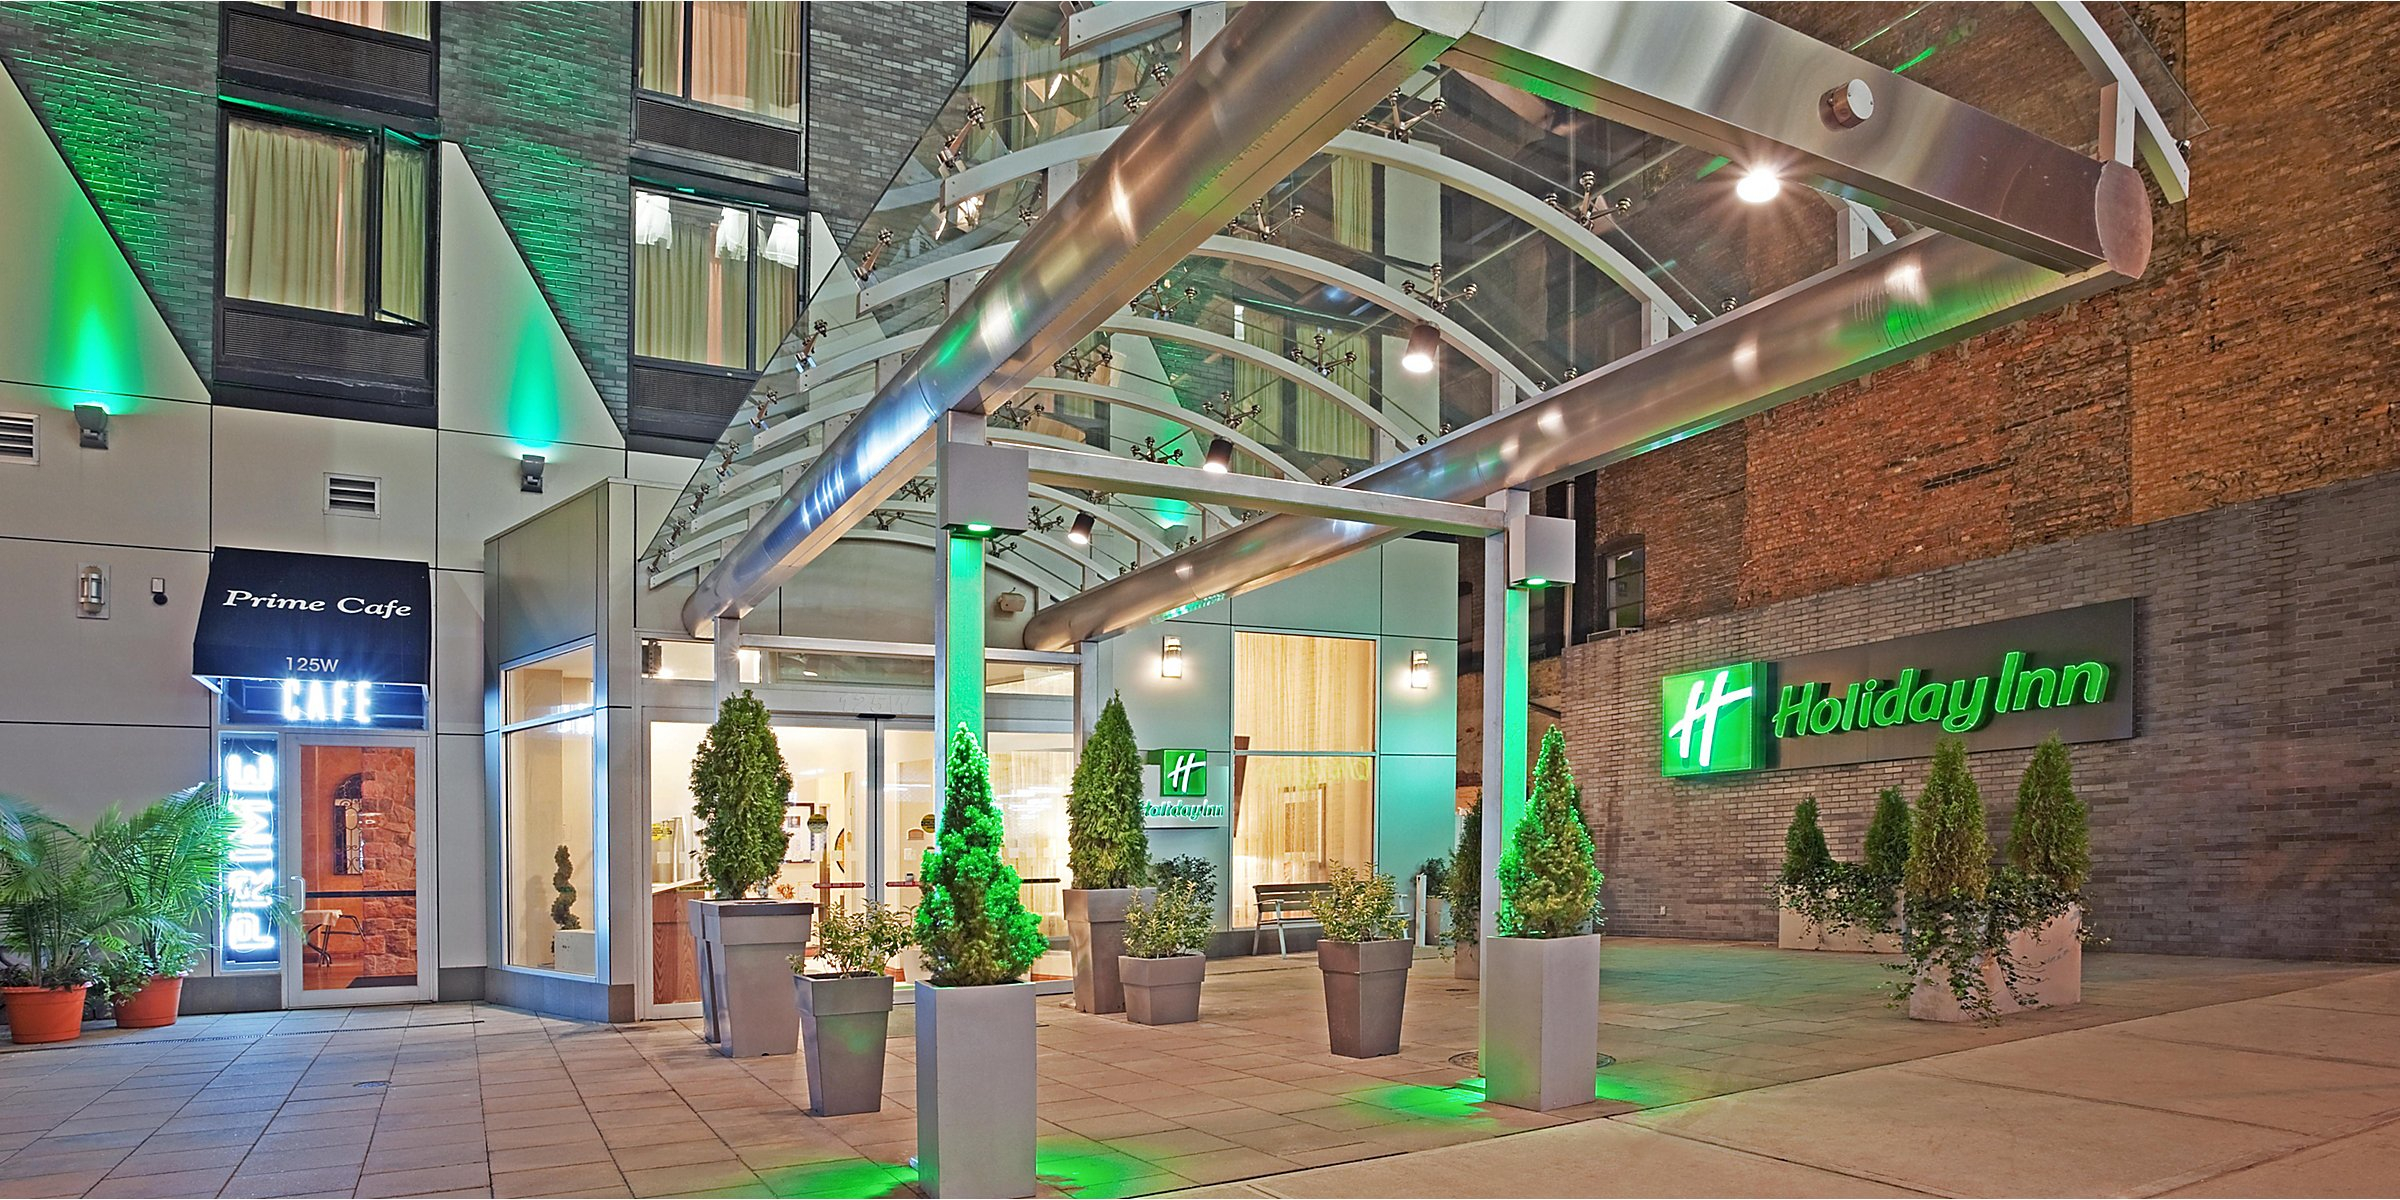 Chelsea Hotels In Flatiron District Holiday Inn Manhattan 6th Ave Chelsea